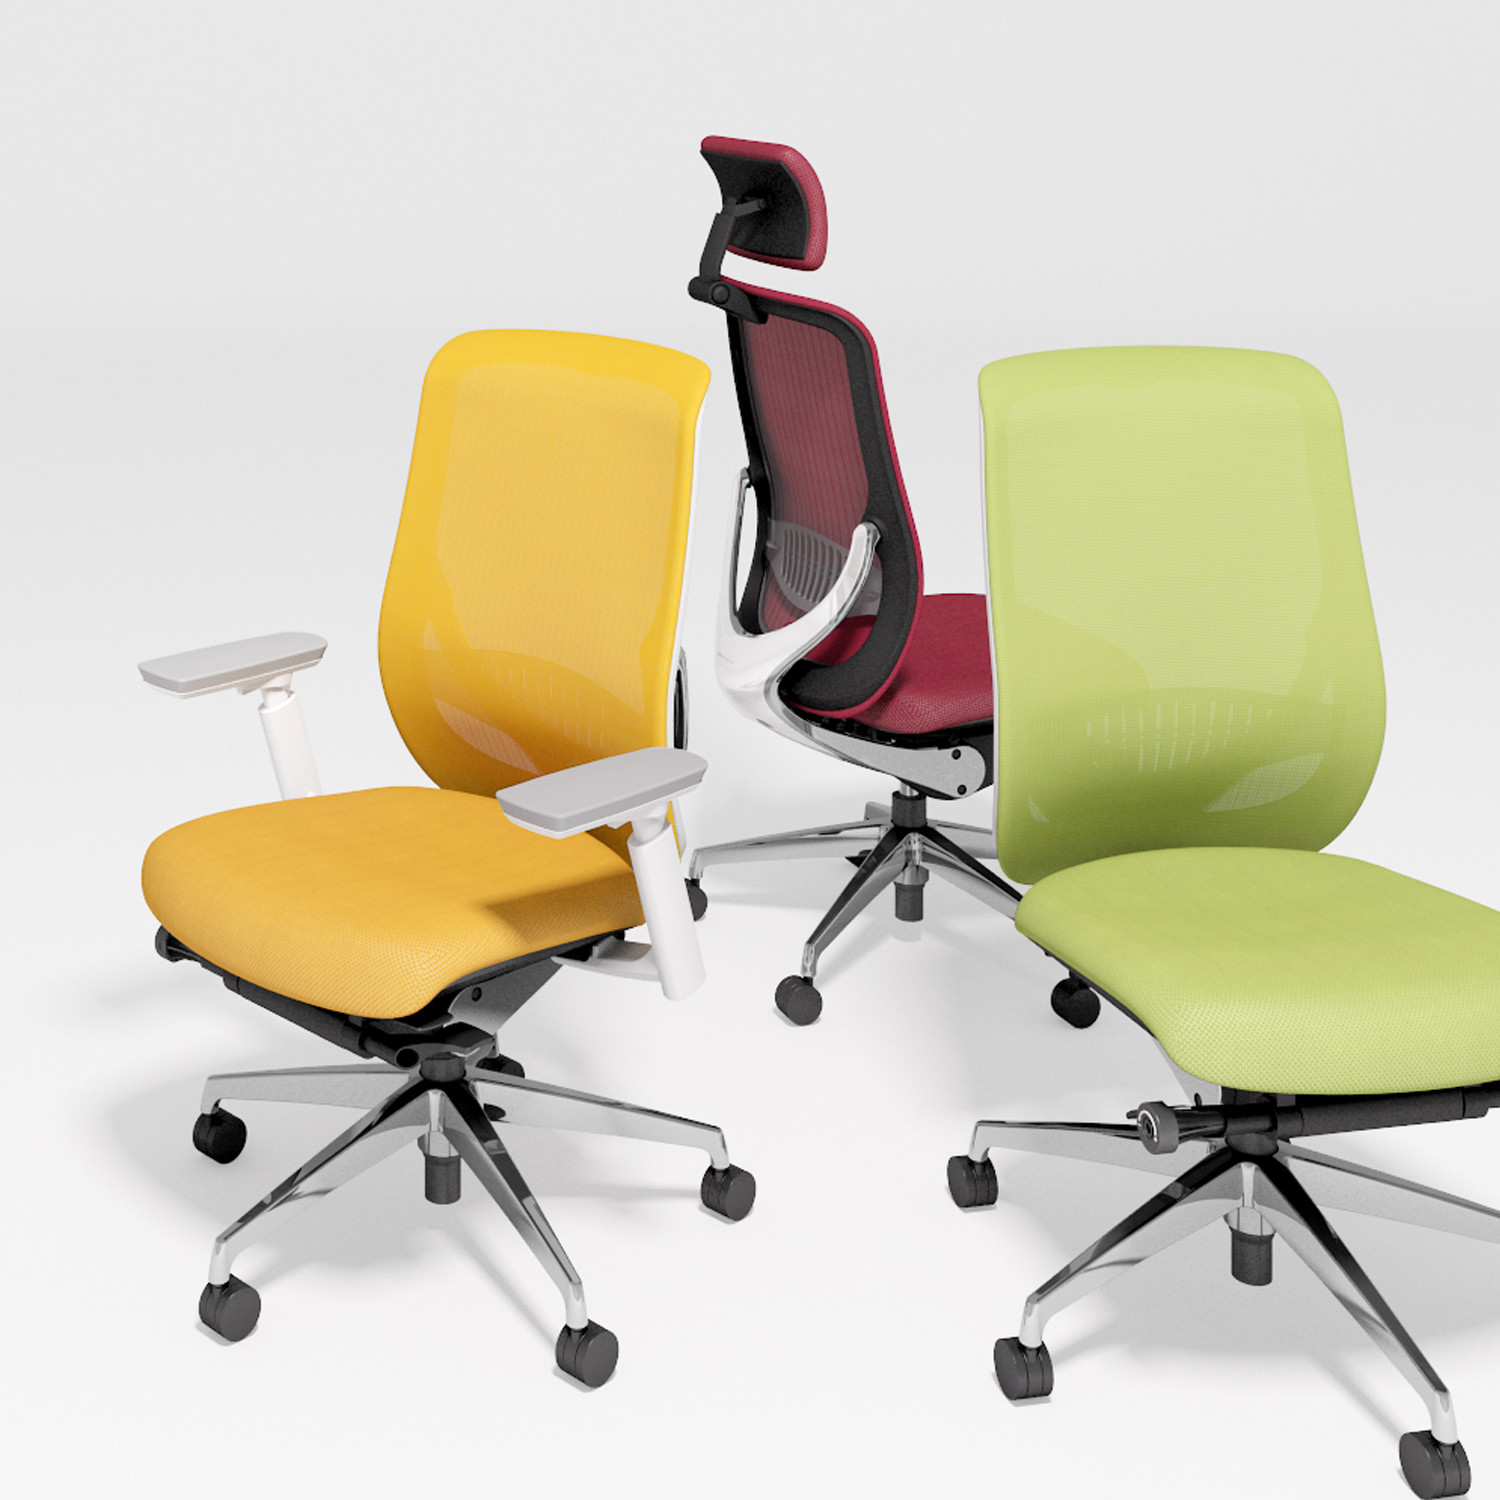 Okamura Zephyr Light Office Seating